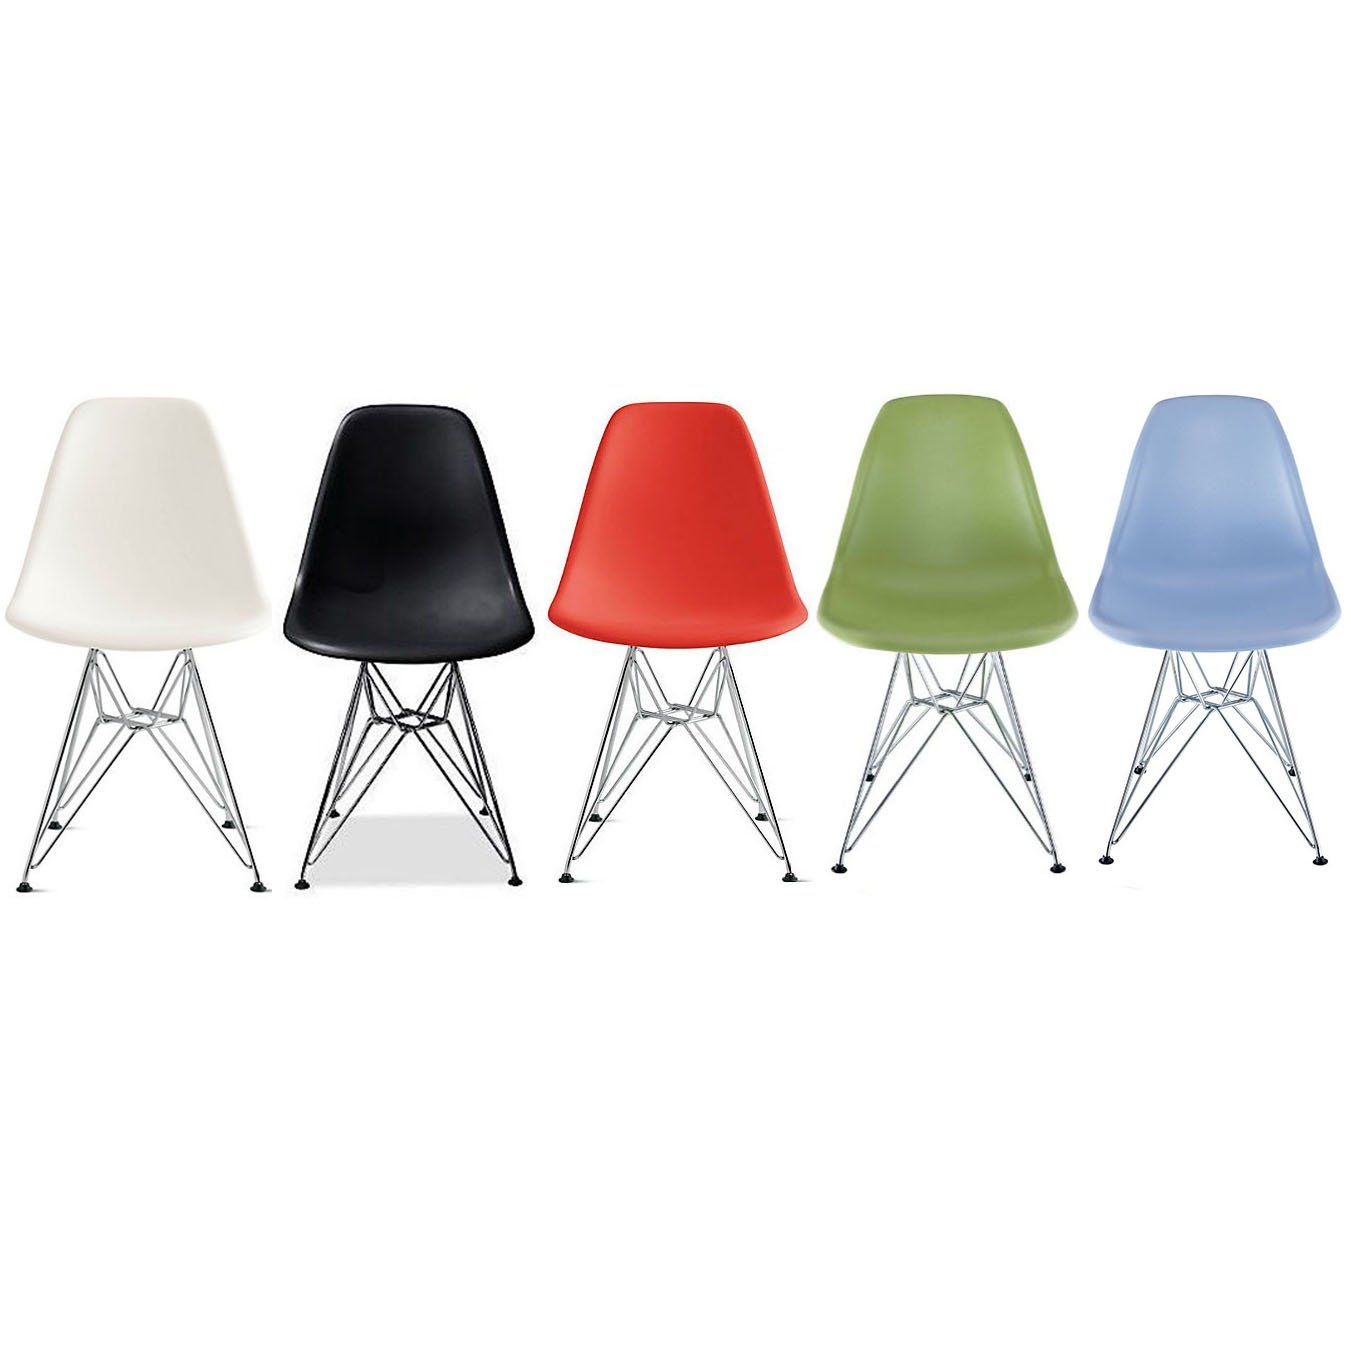 Molded plastic and metal chairs - 2xhome Set Of Five 5 Multiple Color Eames Style Side Chair Chromed